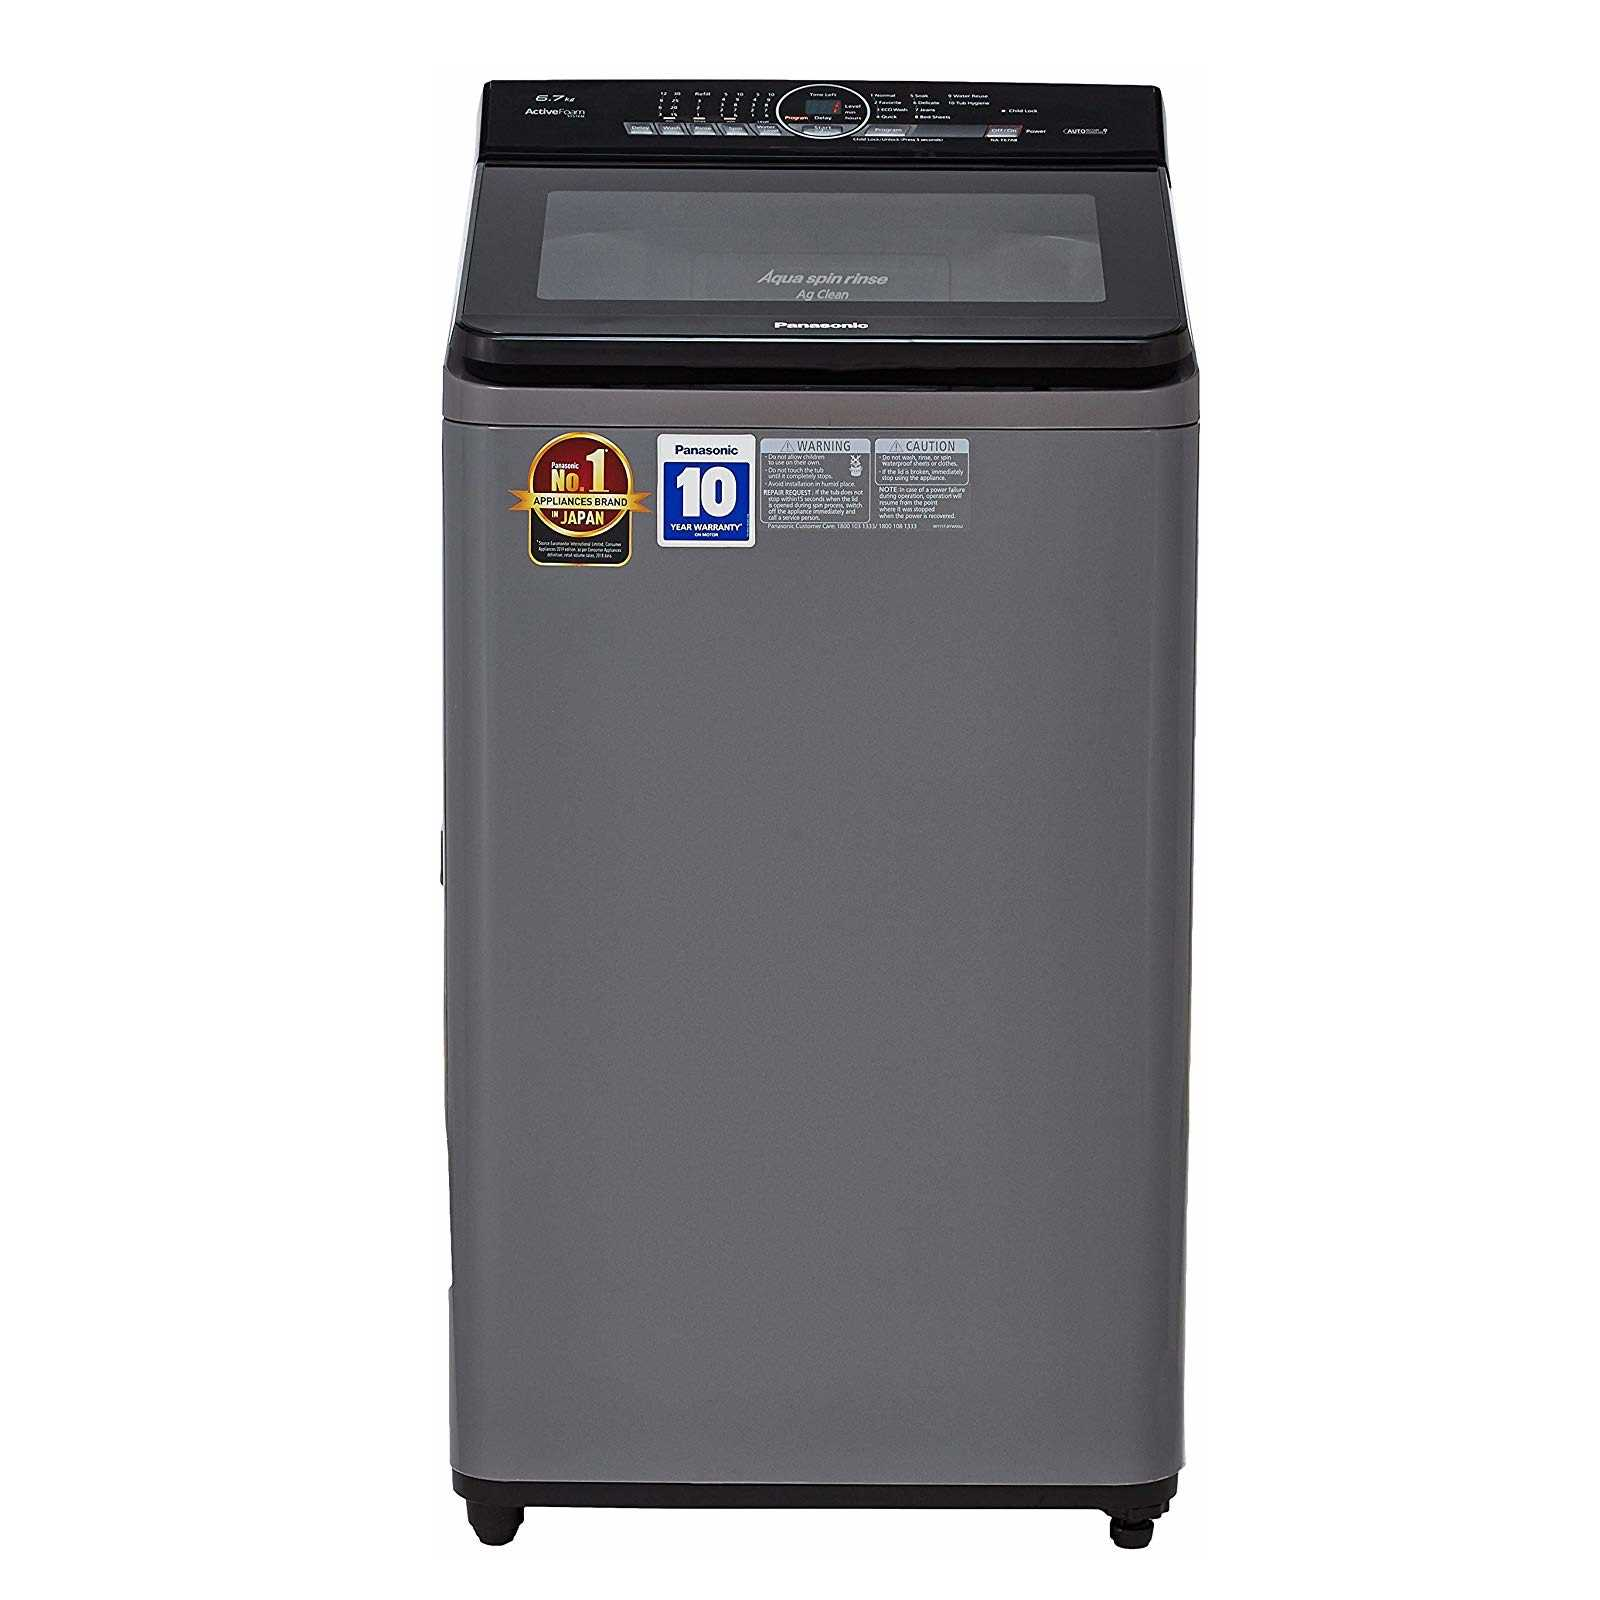 Panasonic NA F67A8 6.7 Kg Fully Automatic Top Loading Washing Machine